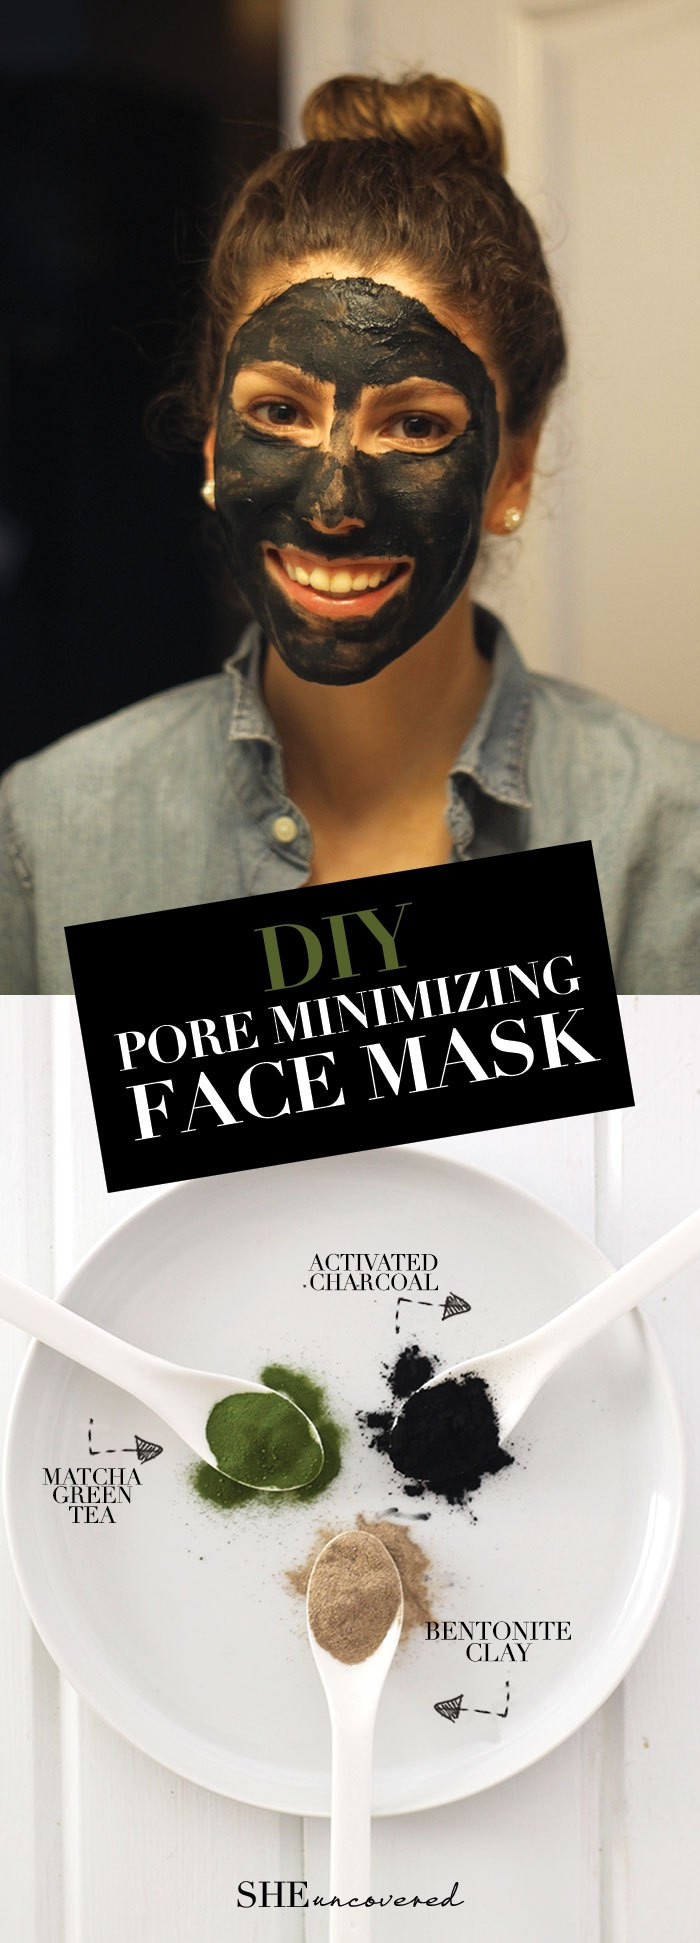 Best ideas about DIY Face Mask For Pores . Save or Pin DIY Pore Minimizing Face Mask • She Uncovered Now.